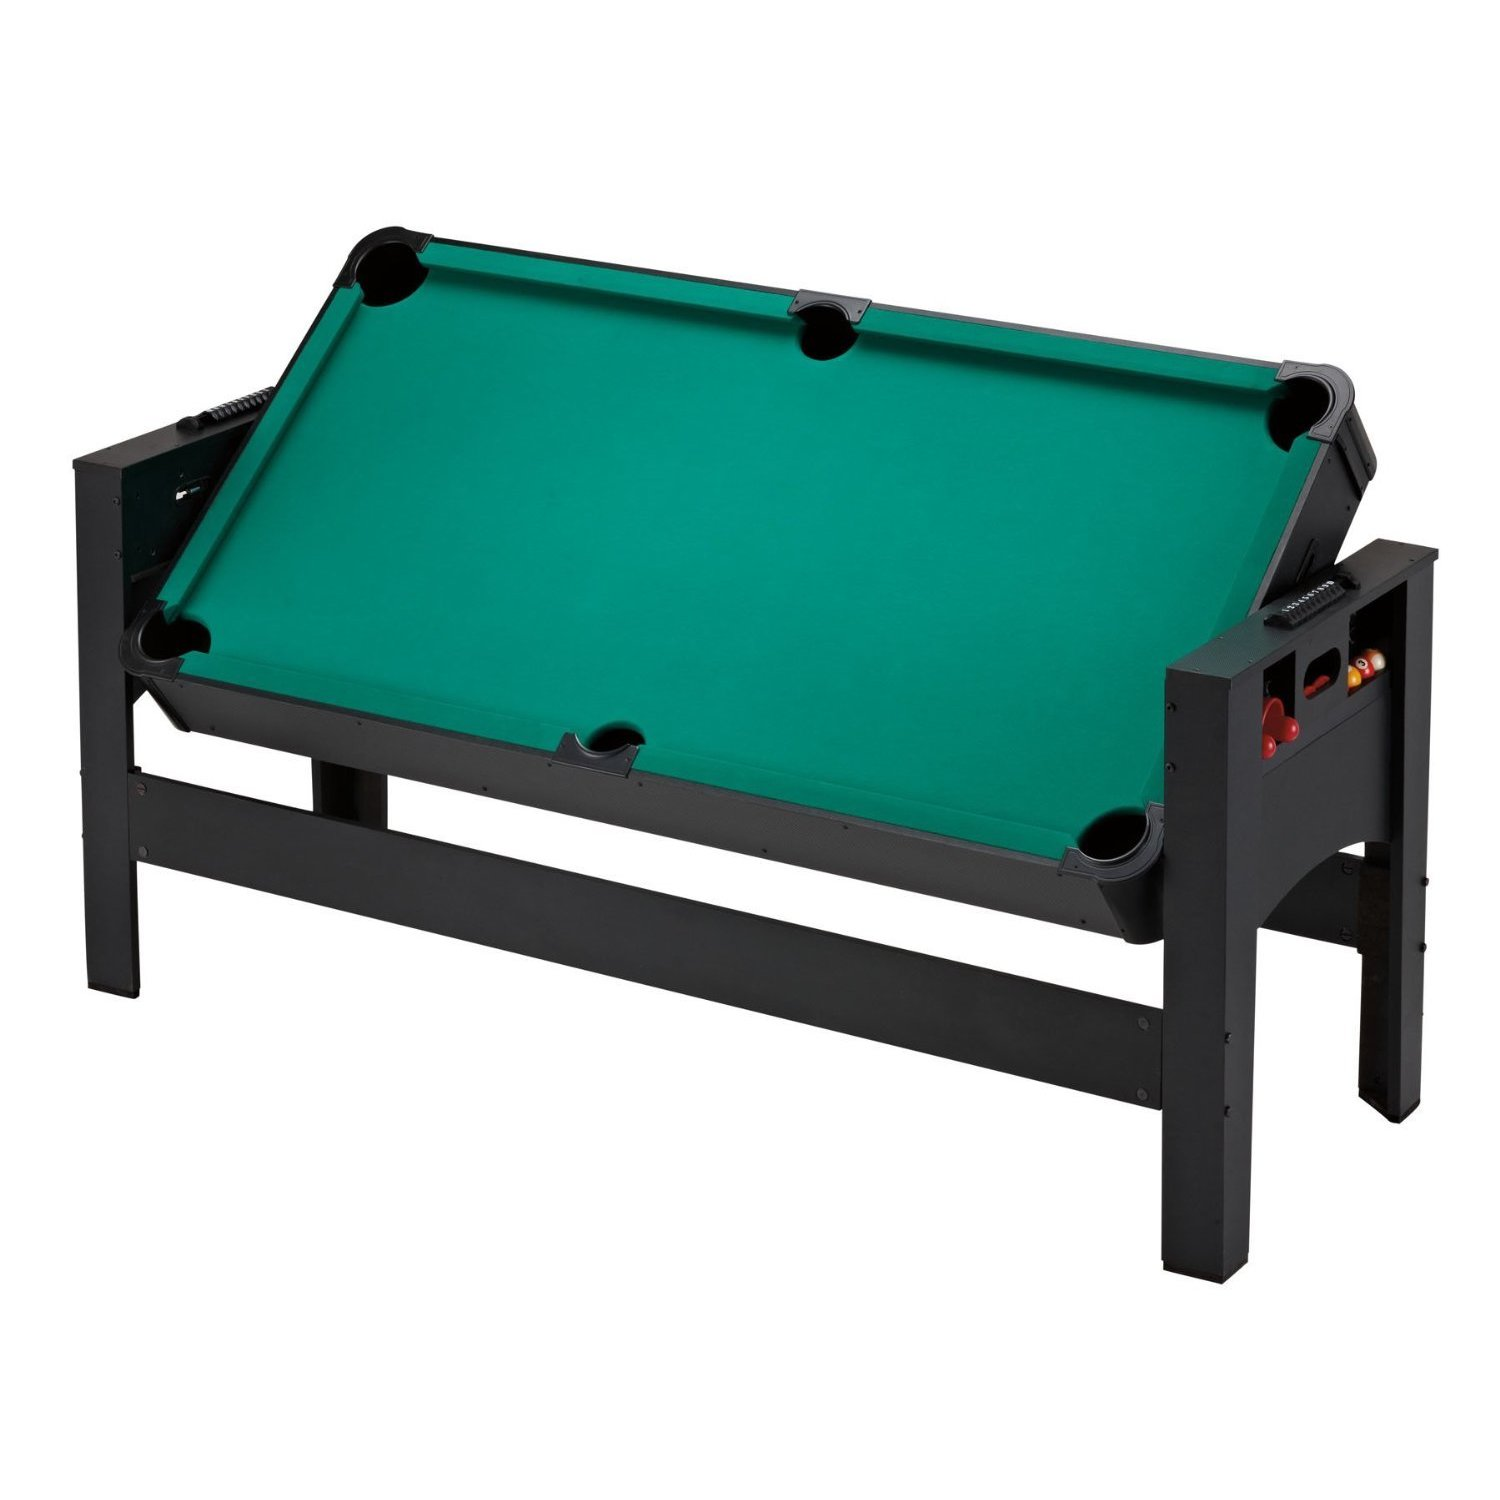 Shop Fat Cat Original 3 In 1 6 Foot Pockey Table Billiards/ Air Hockey/  Table Tennis Game   Black   Free Shipping Today   Overstock.com   11391413